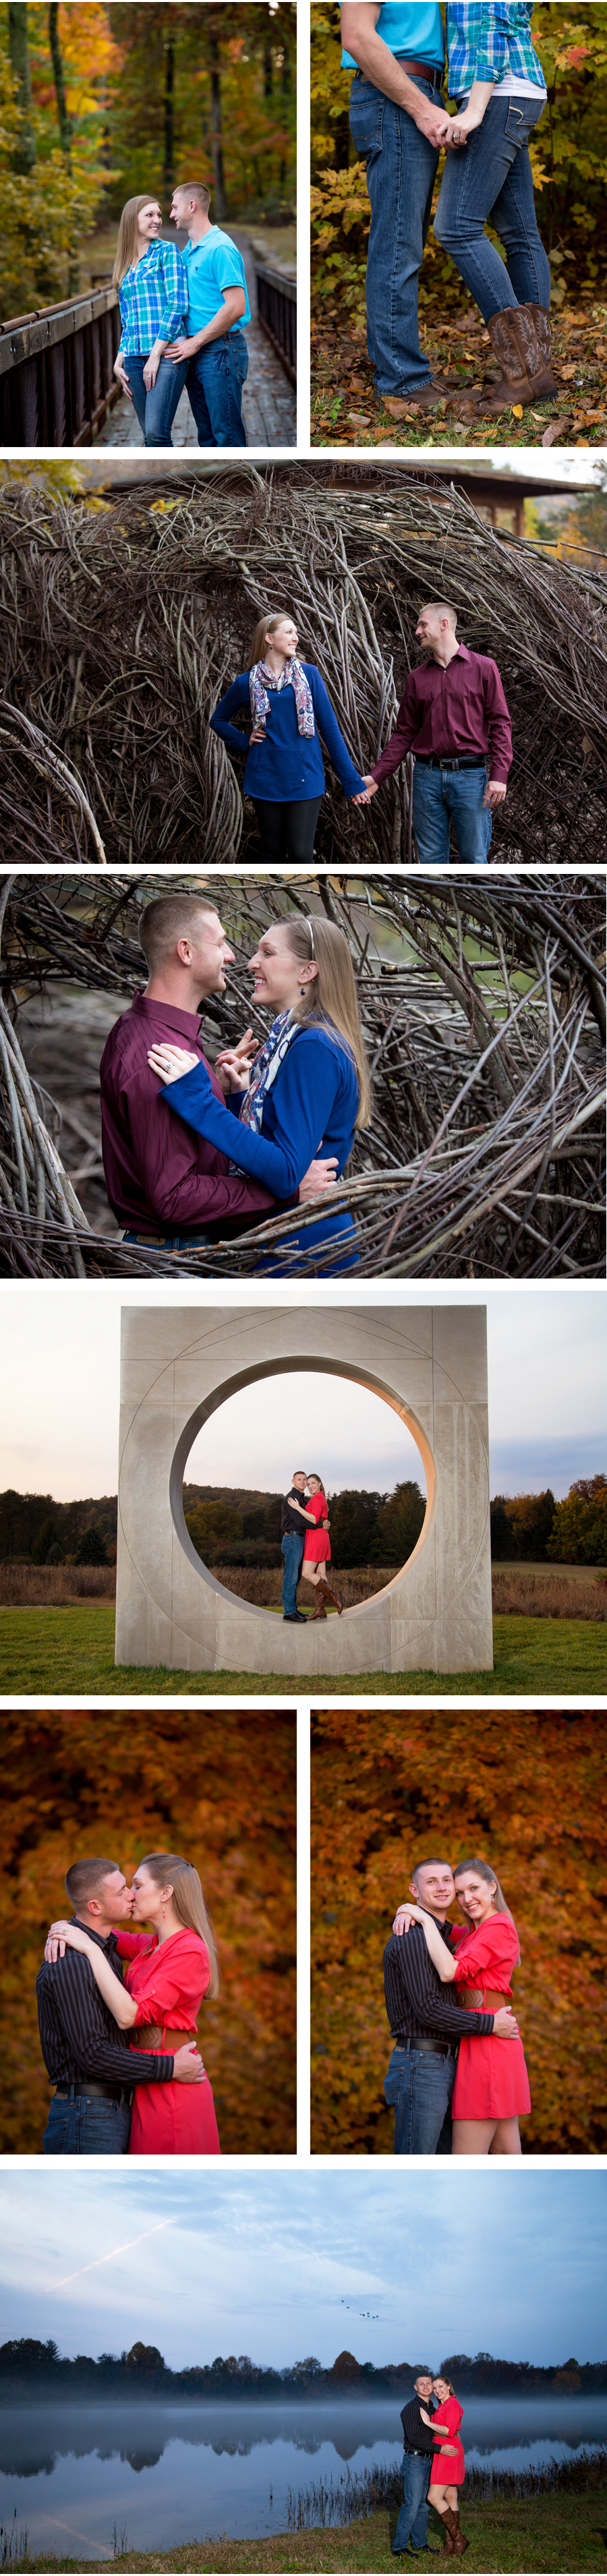 Bernheim Forest Fall Engagement Photos by Louisville Photographers eMotion image and video.